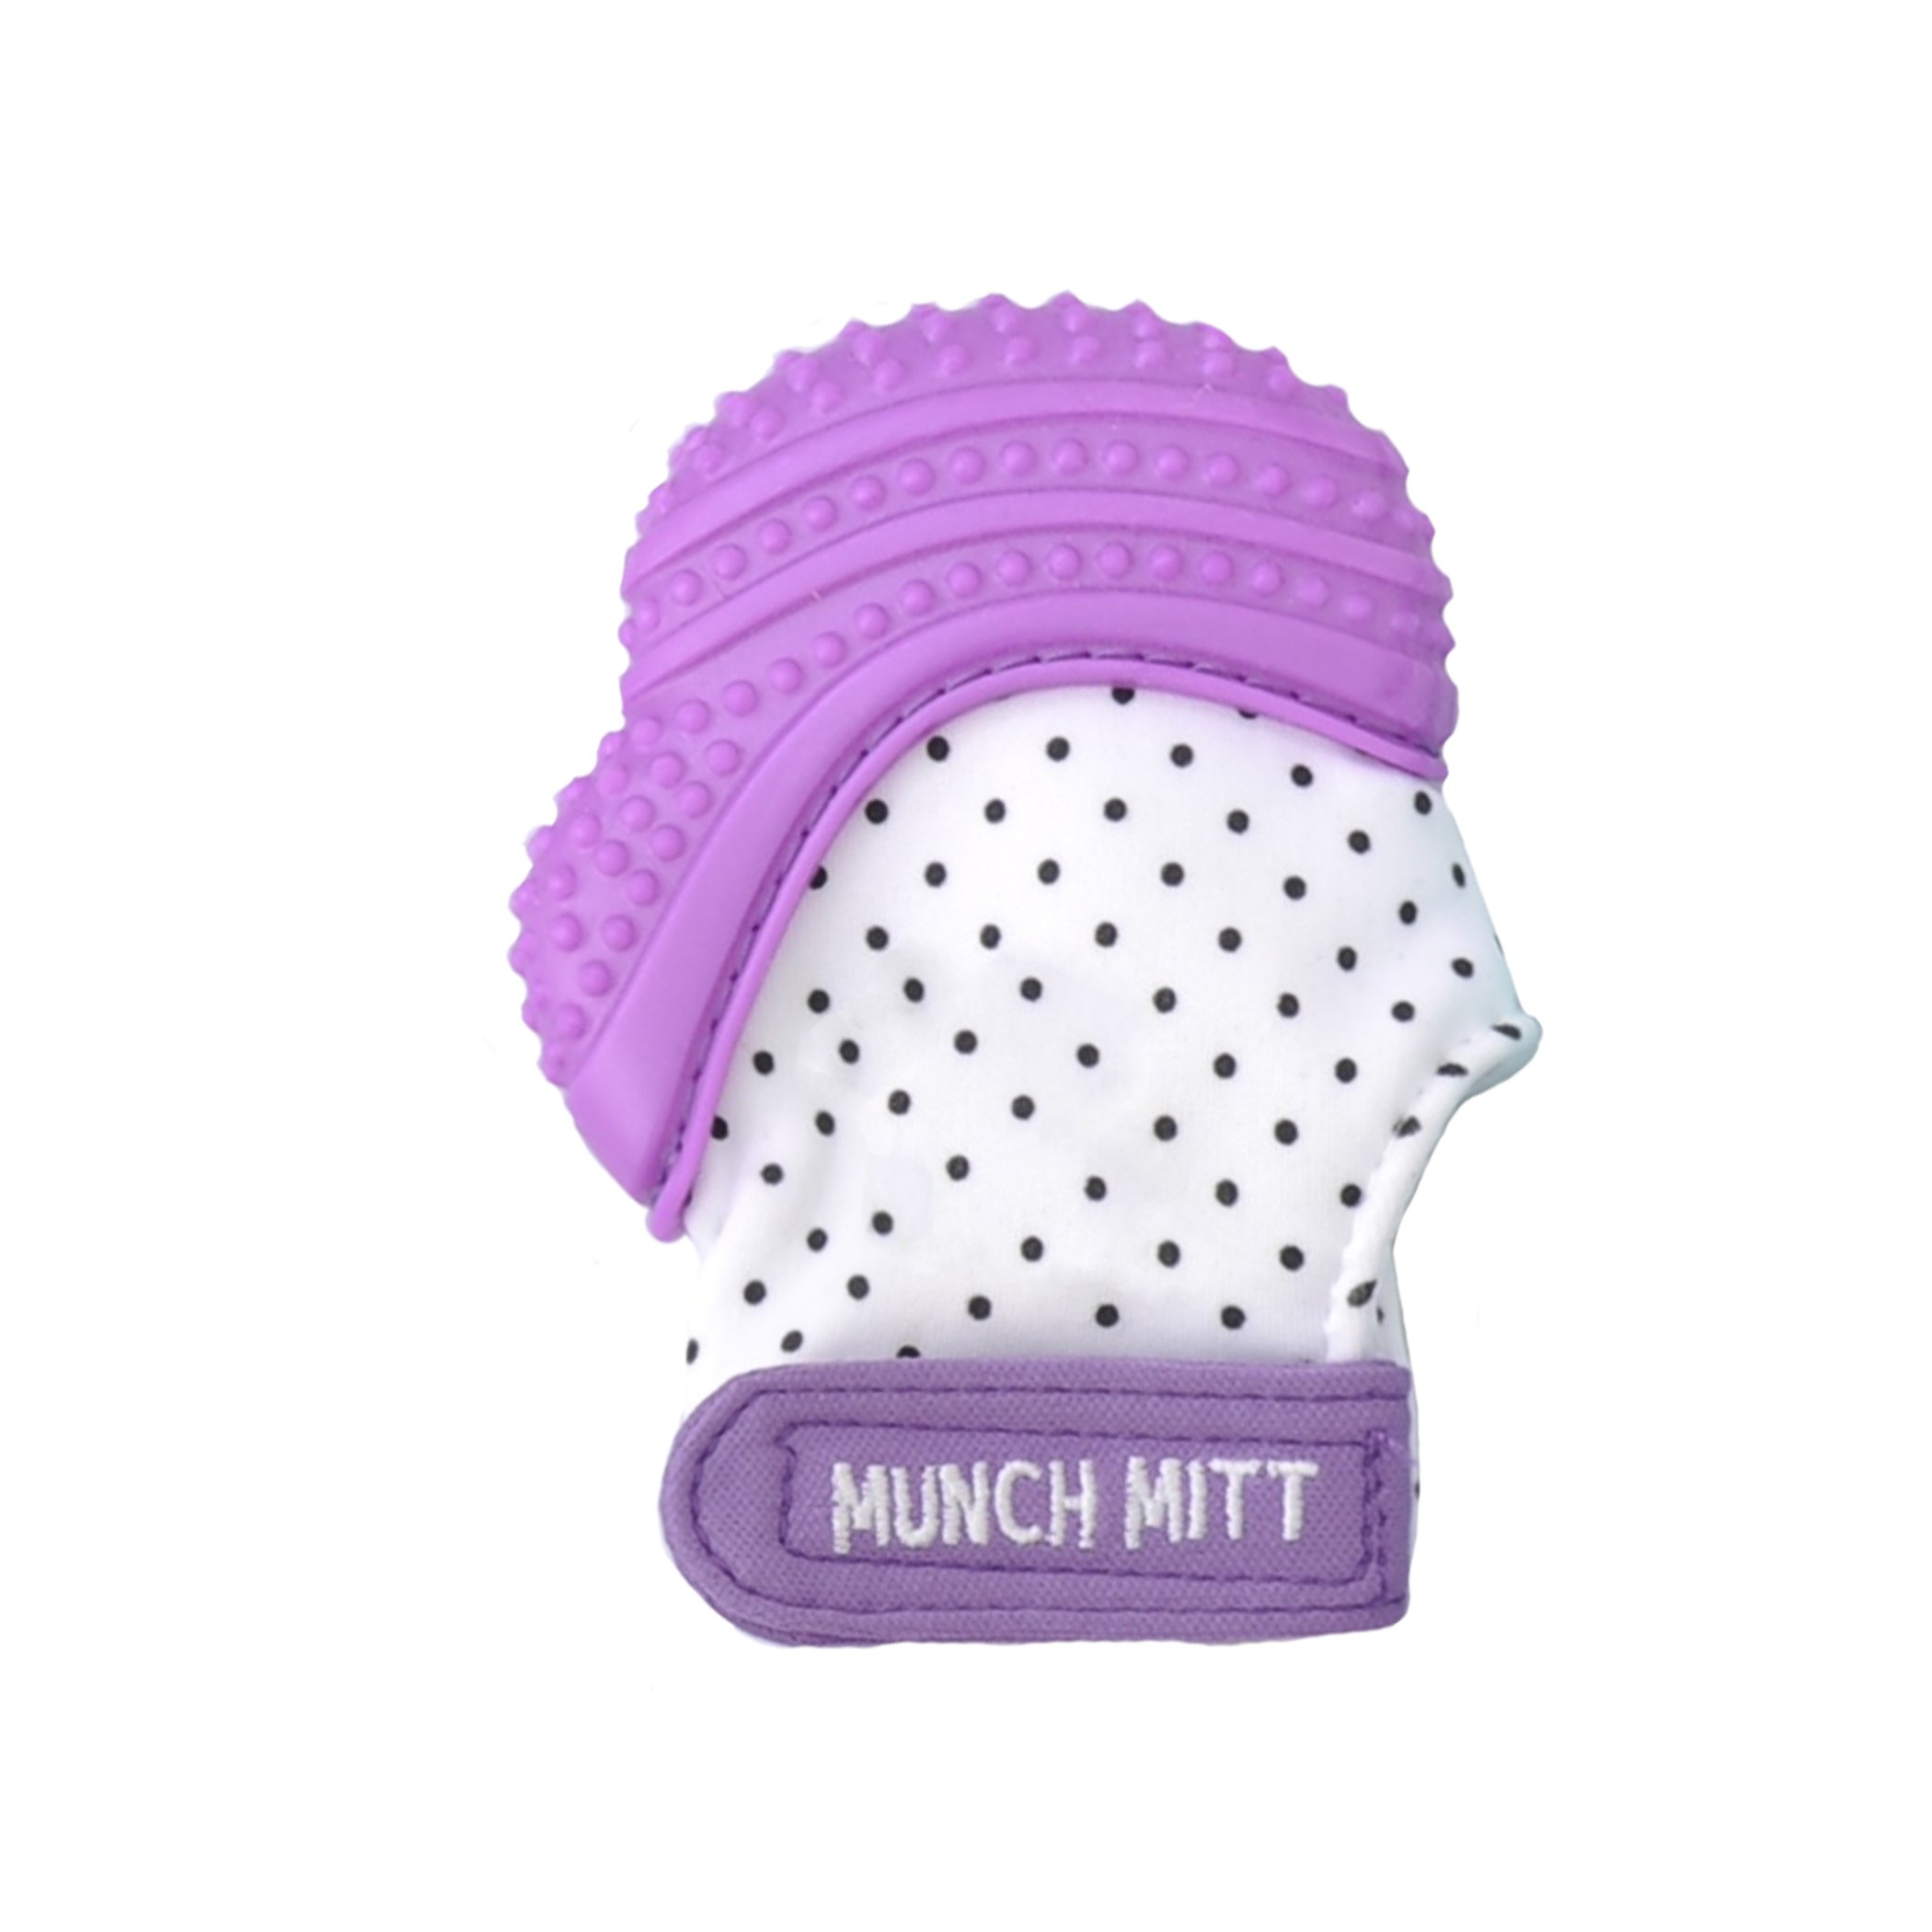 Malarkey Kids Munch Mitt Teething Mitten - The ORIGINAL Mom-Invented Silicone Teether Mitten with Travel Bag – Ideal Teething Toys for Baby Shower Gift  - Purple Polka Dot